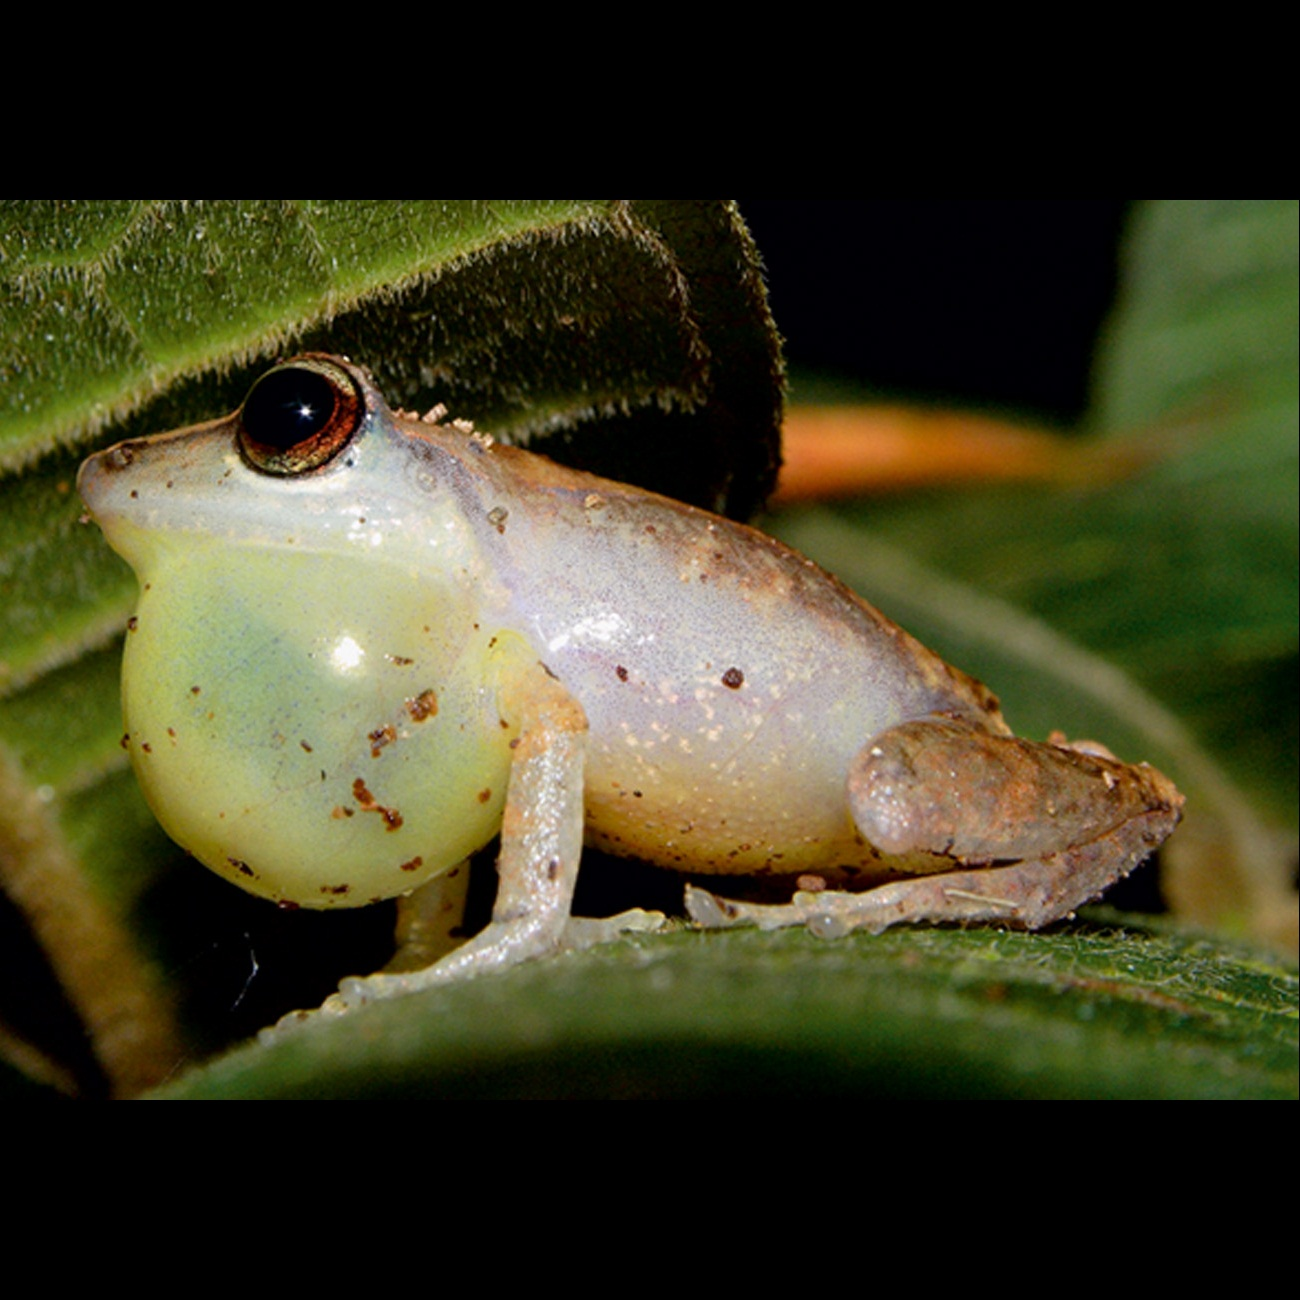 Cryptic species of tree frog revealed in Cuba